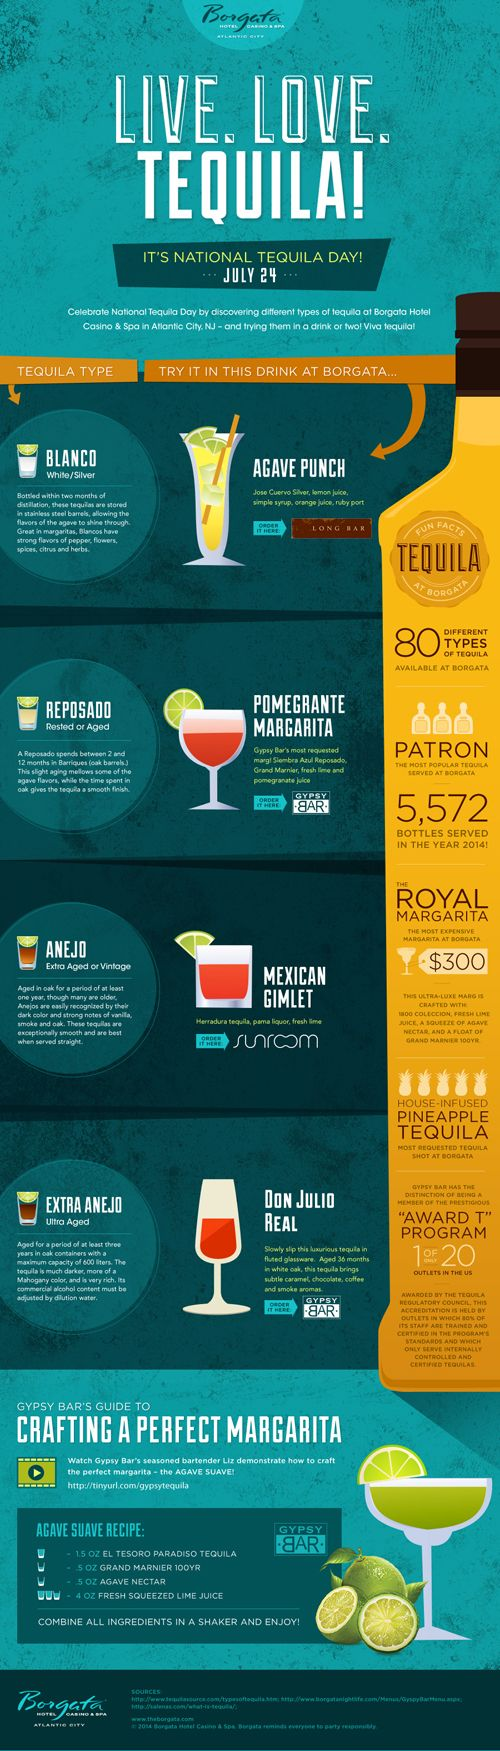 Live. Love. Tequila! Celebrate #NationalTequilaDay by discovering different types of tequila at Borgata! #tequila #Borgata #doac #atlanticcity